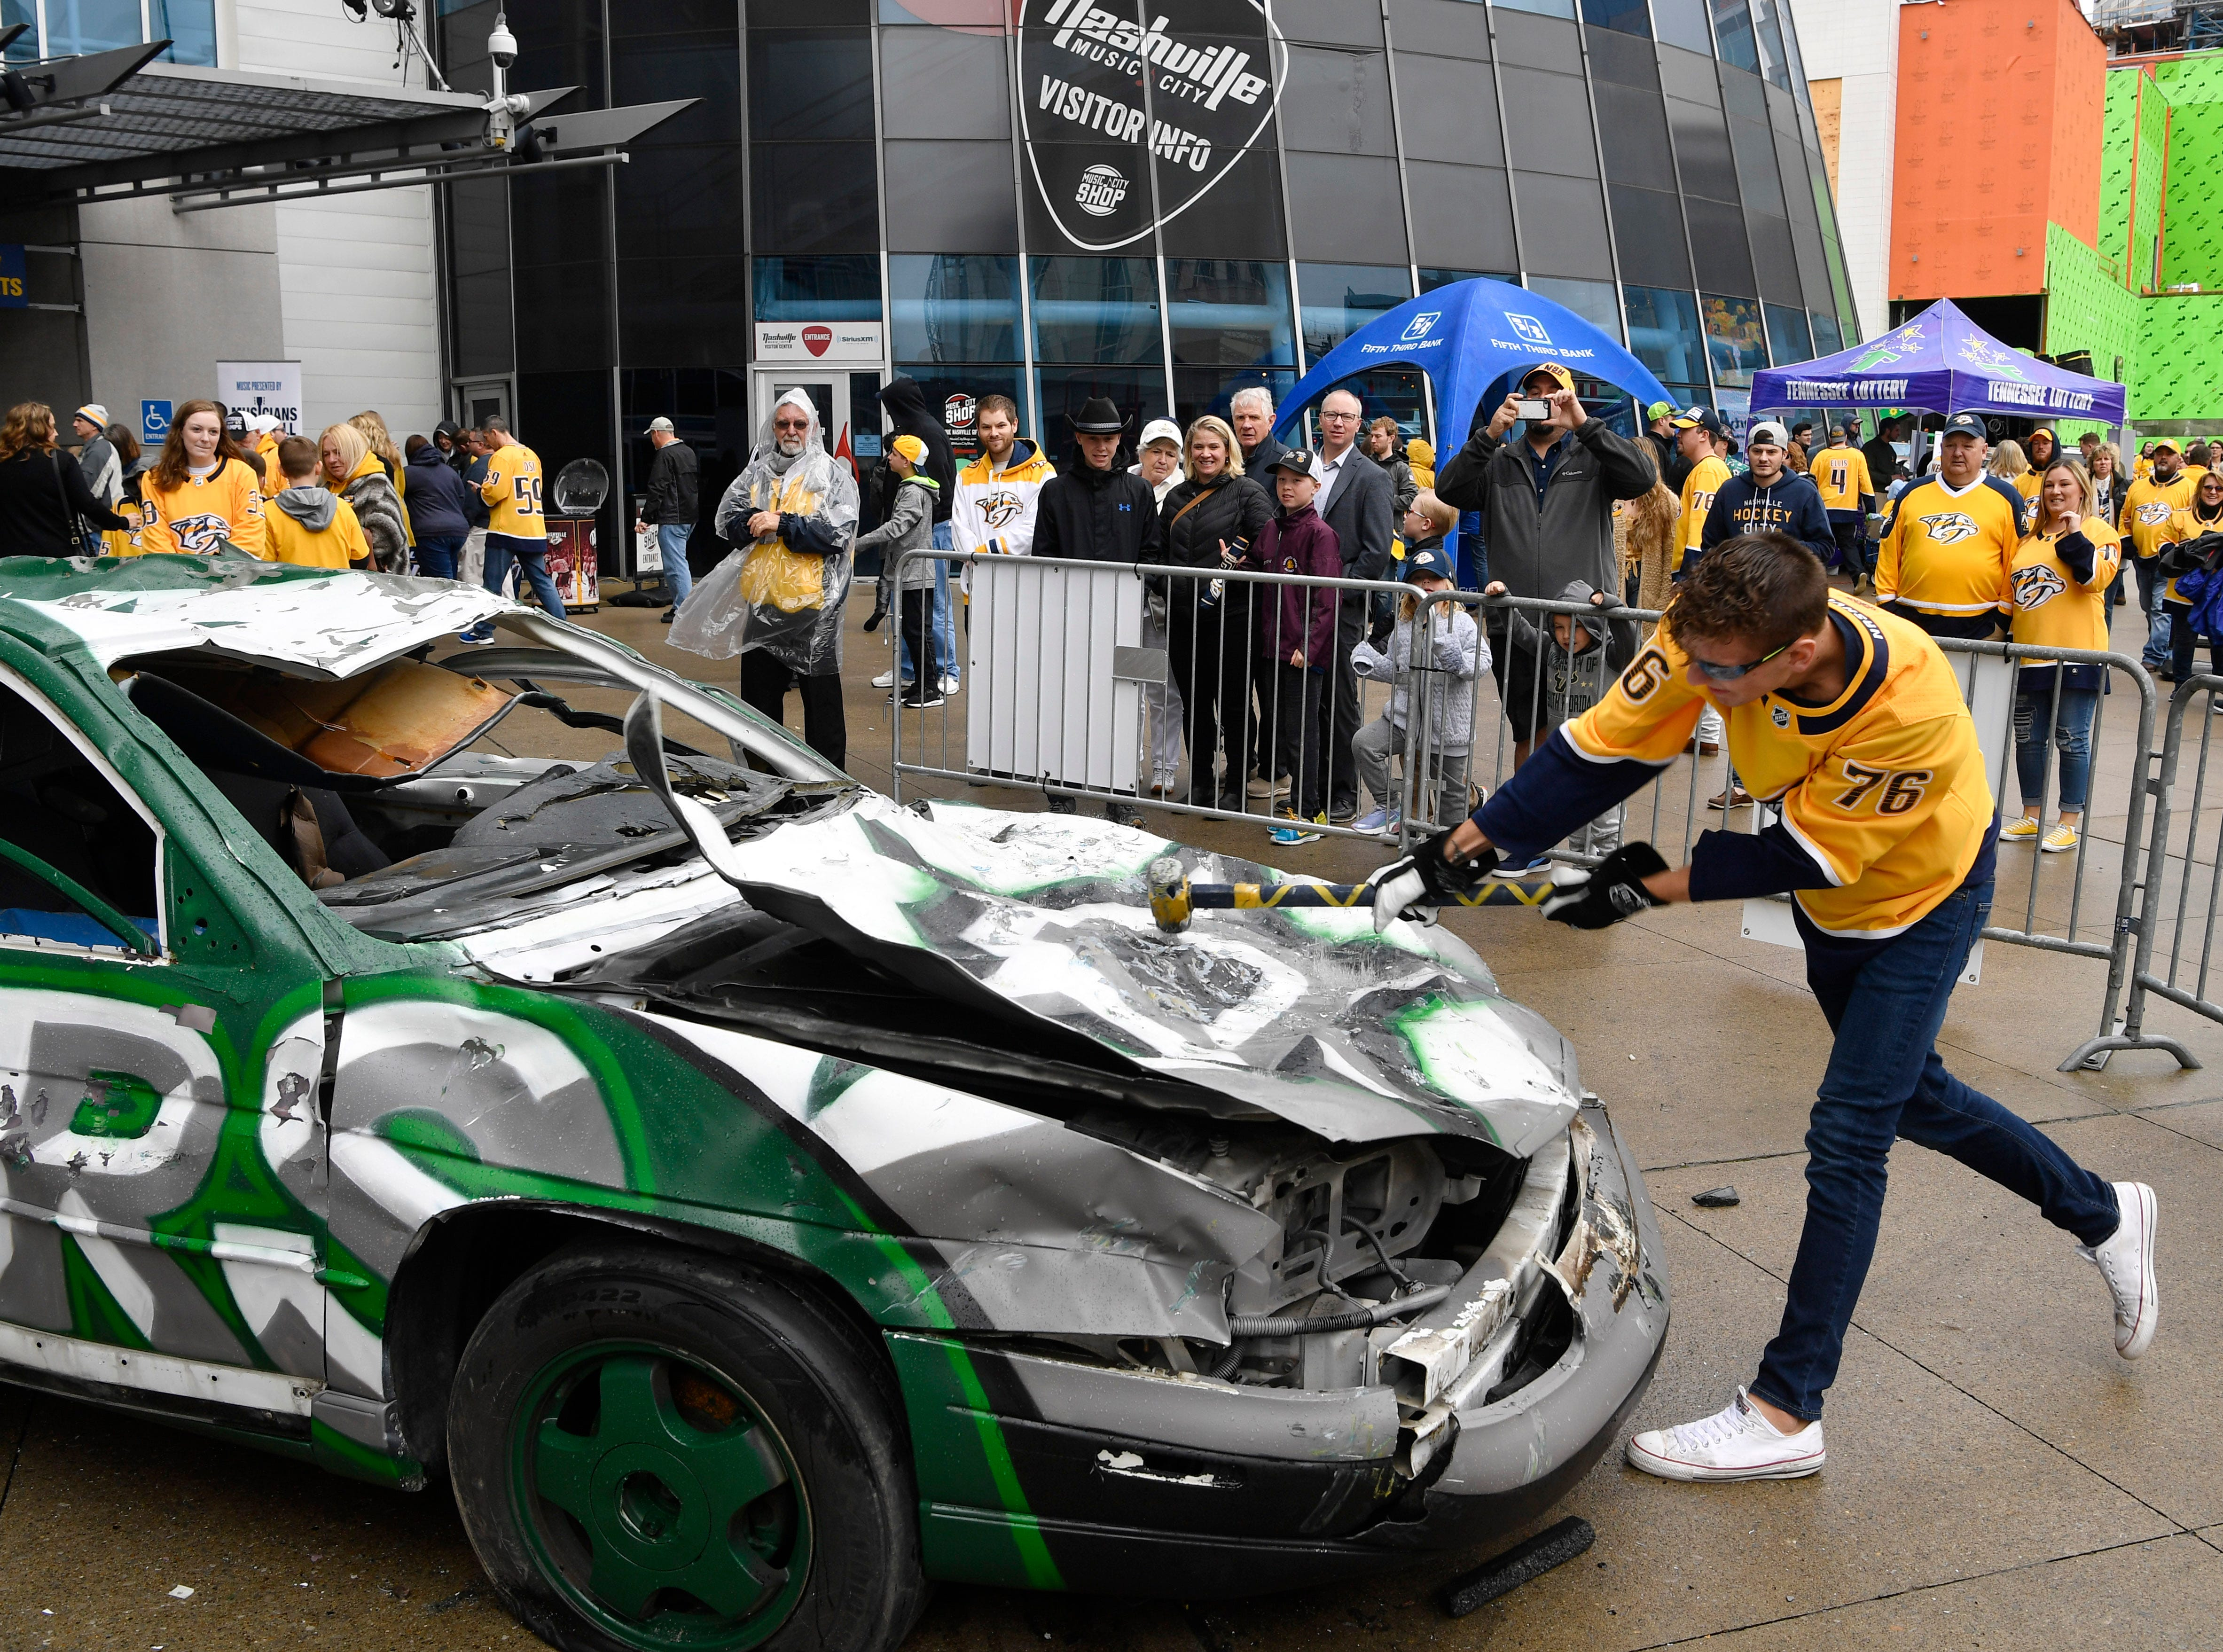 Tyler Murcko takes a swing at the Smash Car before the divisional semifinal game against the Stars at Bridgestone Arena Saturday, April 20, 2019, in Nashville, Tenn.